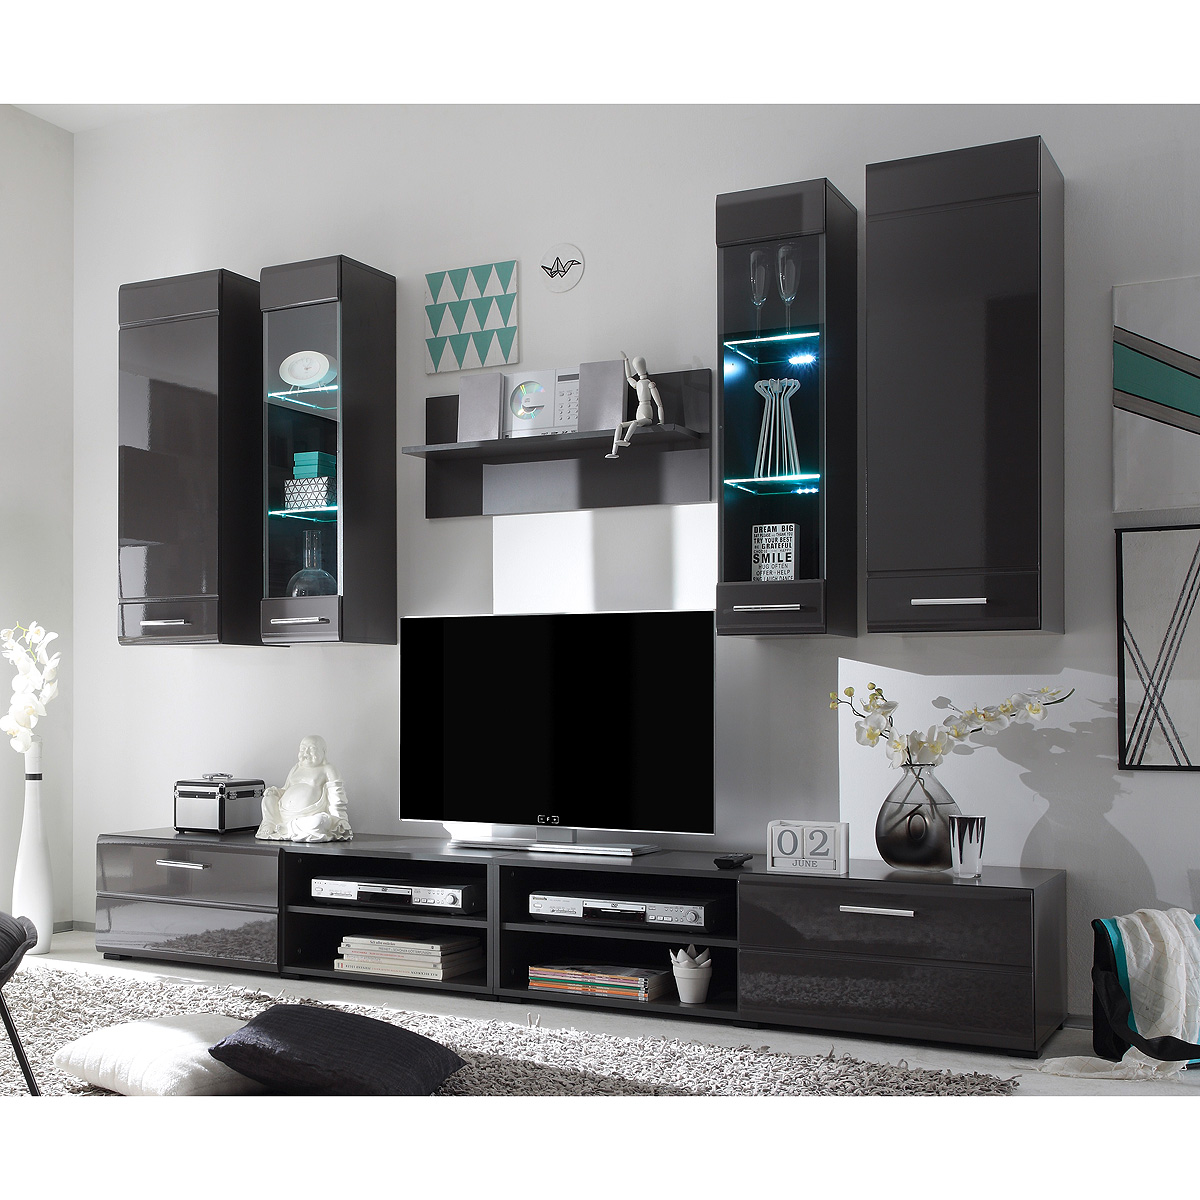 wohnwand force anbauwand wohnzimmer wohnkombi in lava hochglanz inkl led ebay. Black Bedroom Furniture Sets. Home Design Ideas